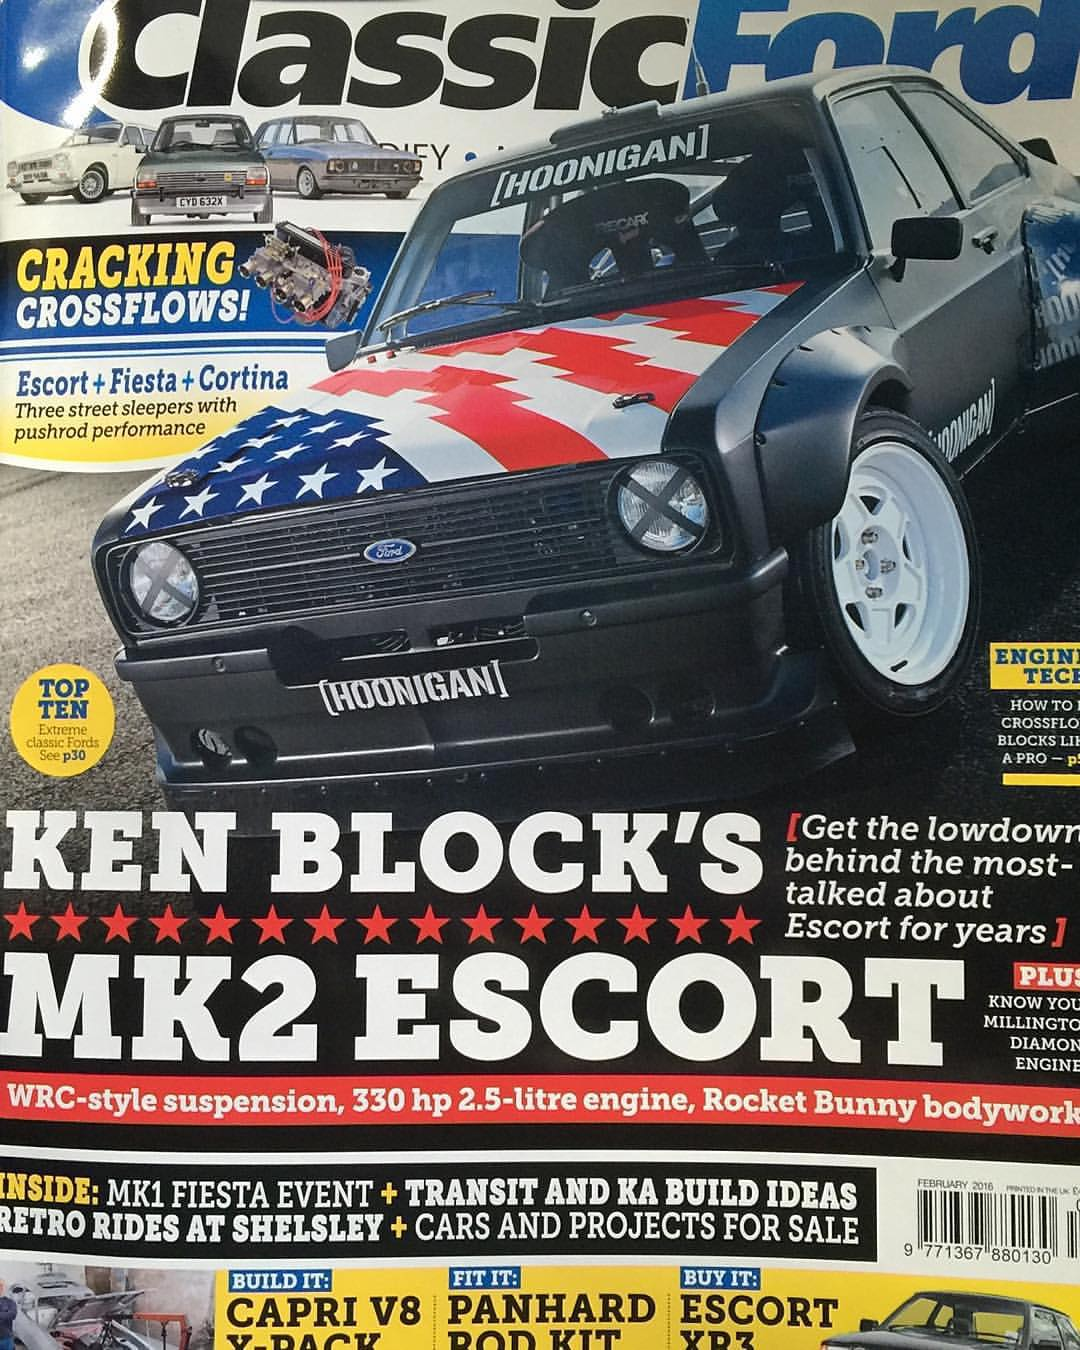 My Hoonigan Gymkhana Escort is on the cover of the latest issue of @ClassicFordMagazine​ - that rules! Which reminds me, I definitely need some more seat time in this thing. That Ryan Tuerck guy took it all at @GymkhanaGrid​ last November. Ha....